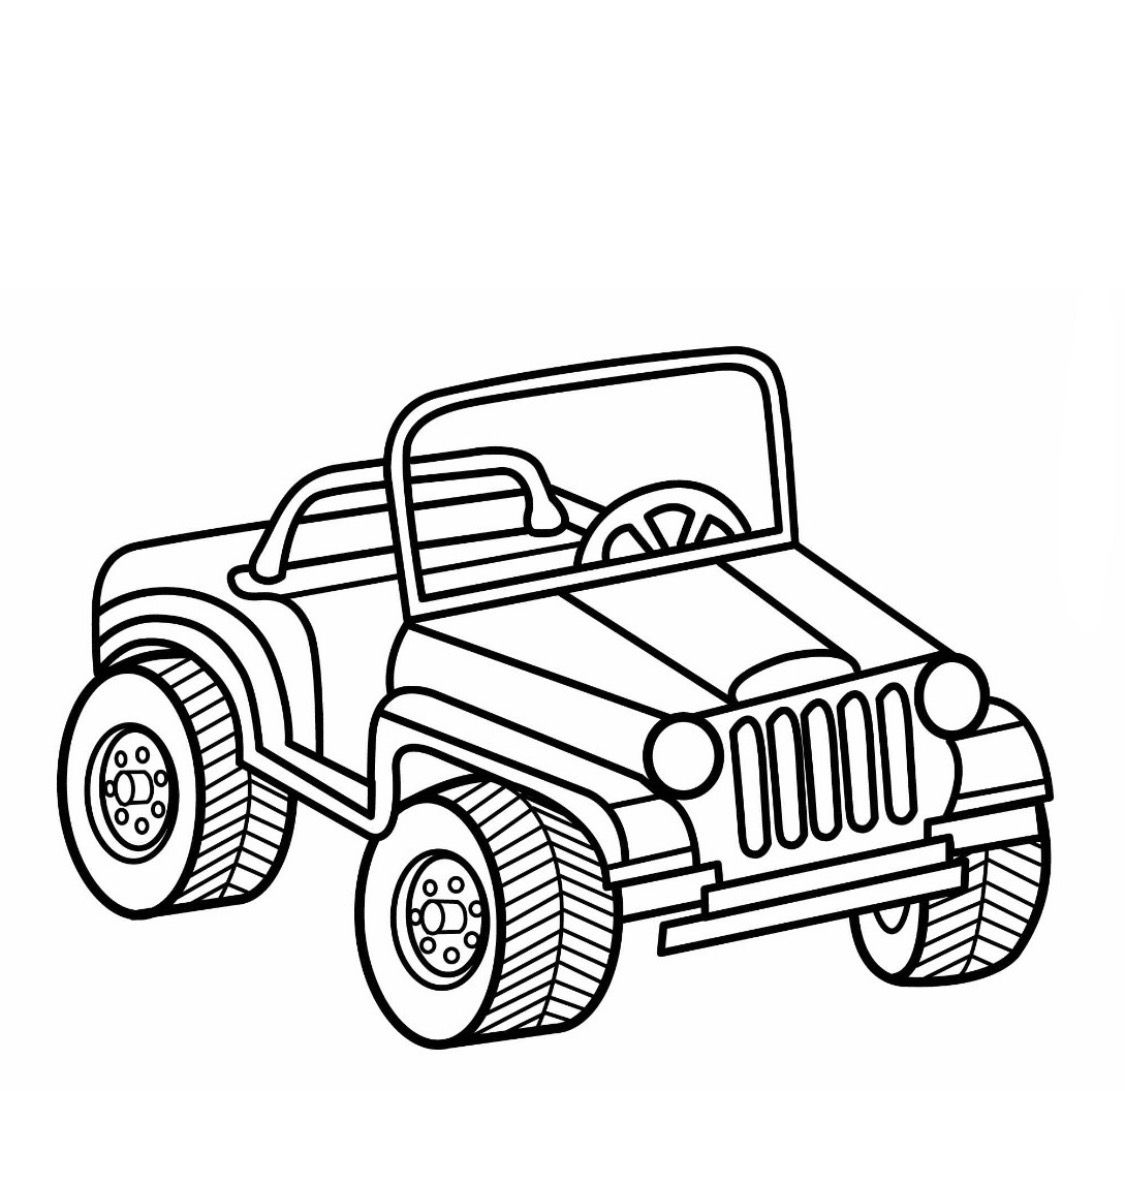 Safari Jeep Coloring Pages Download Cars Coloring Pages Coloring Pages For Kids Coloring Pages